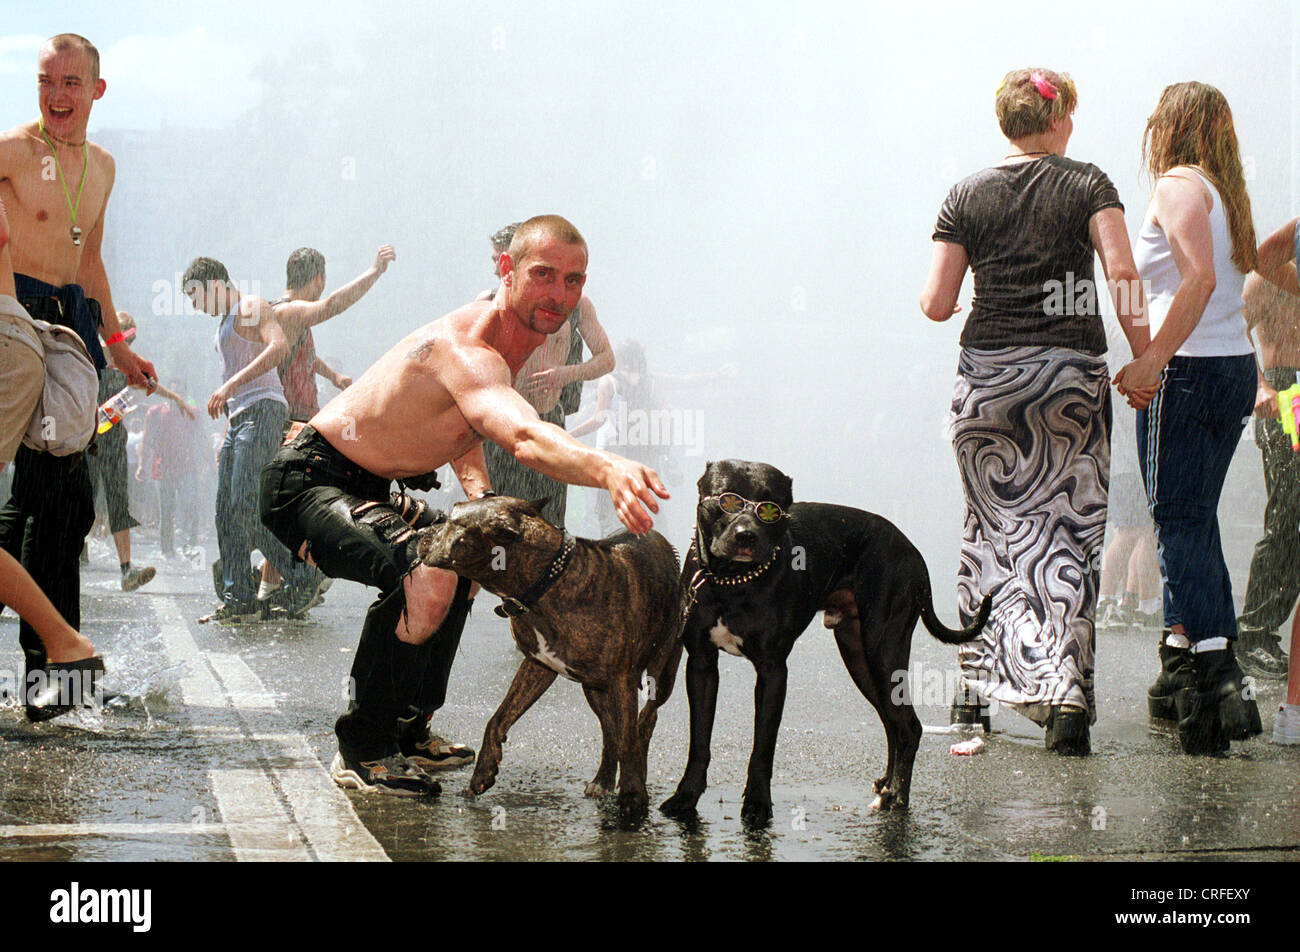 Berlin, Germany, A Young Man With Dogs In The Shower At The Love Parade